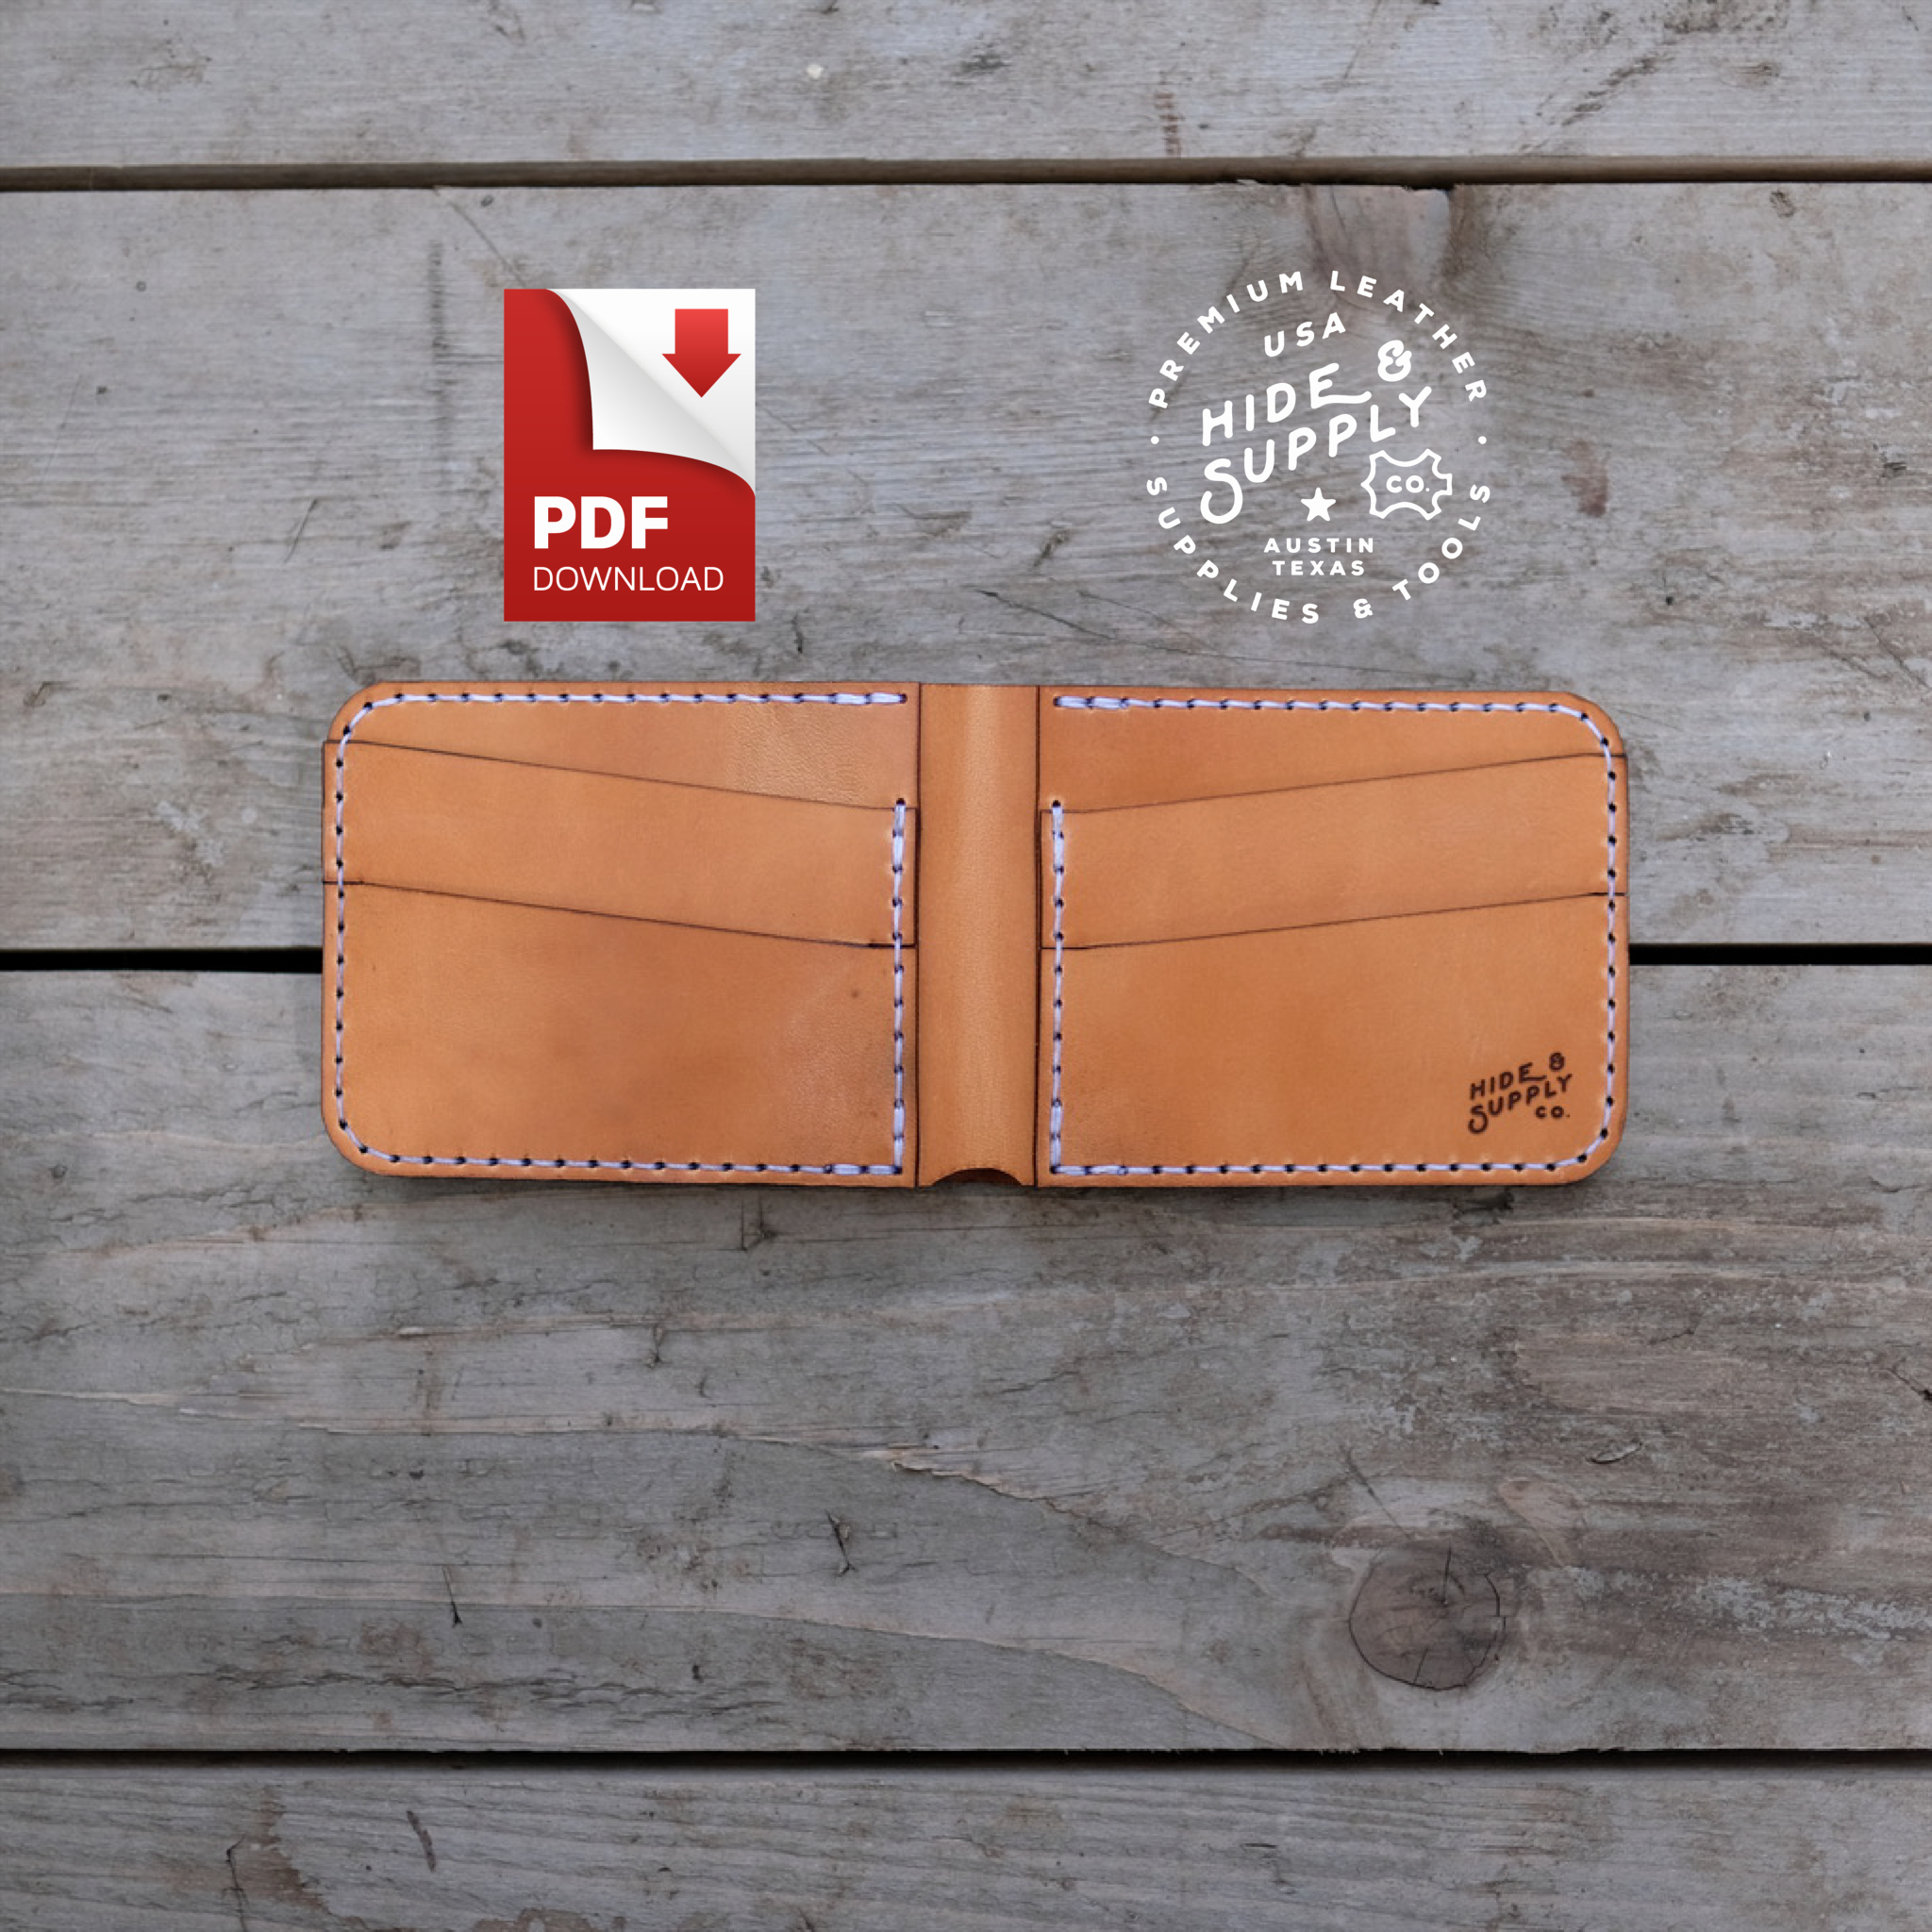 Wallet Card Template Free Luxury Hide & Supply Leather Templates & Supplies